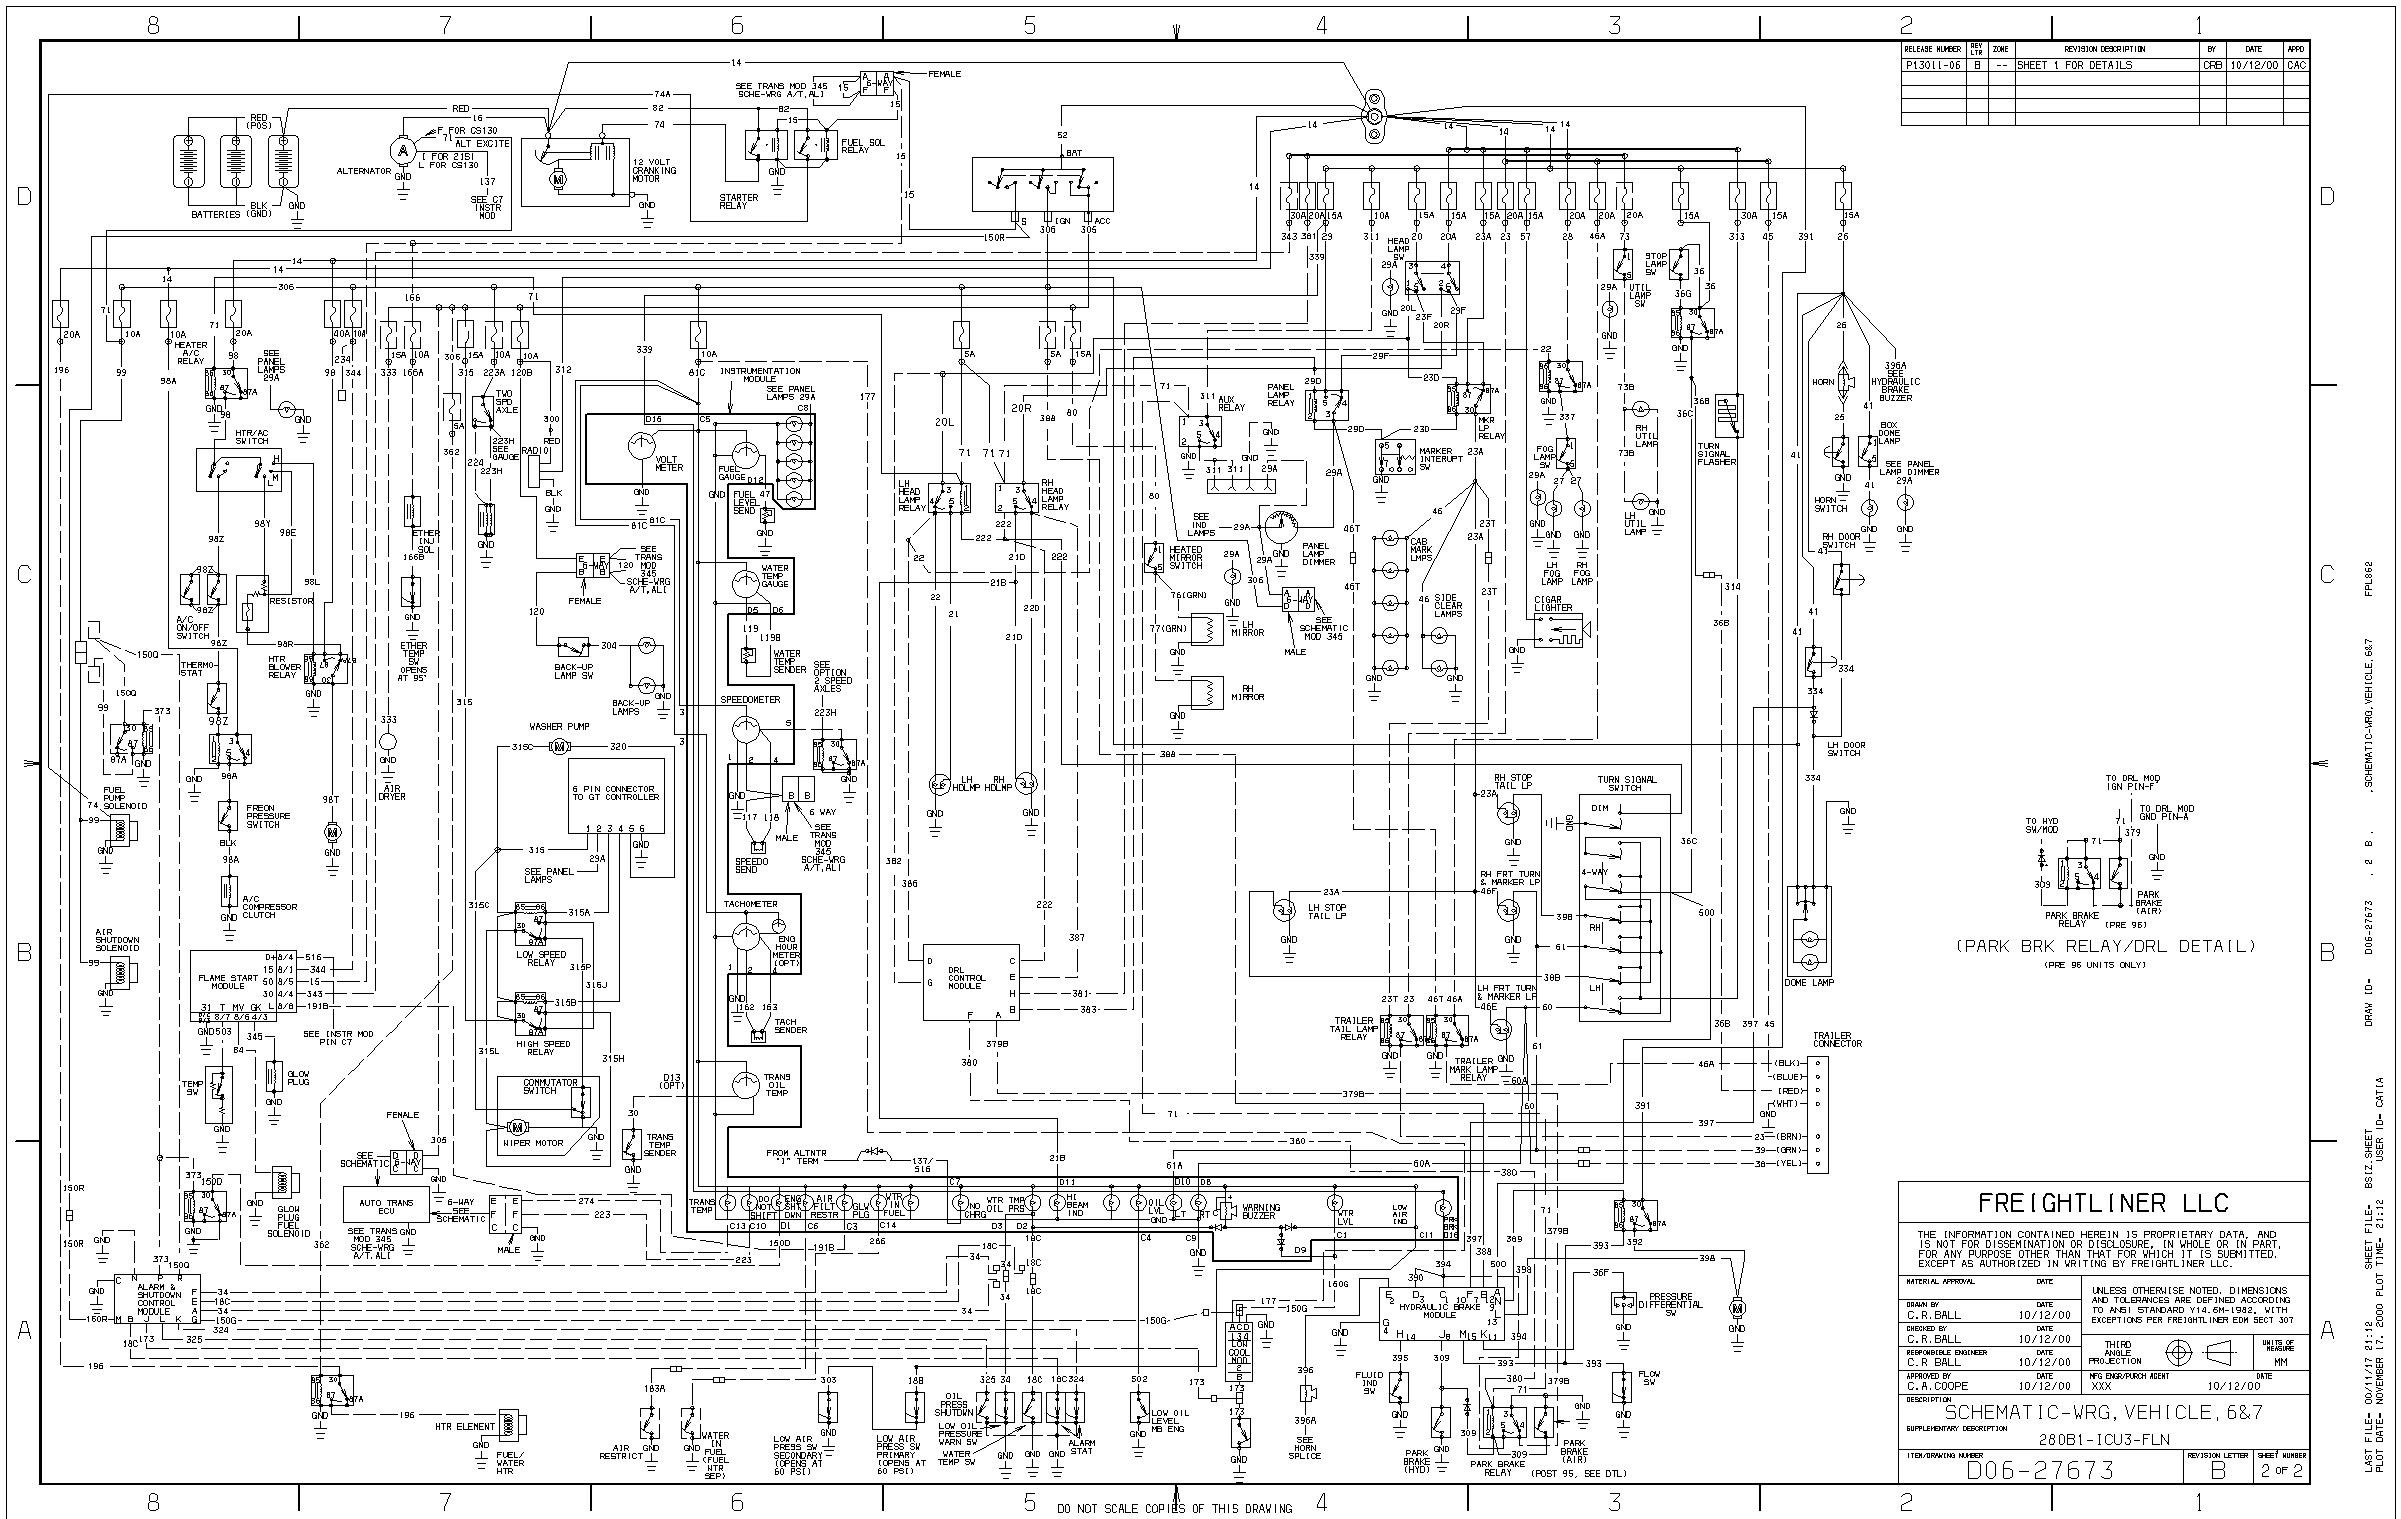 2002 toyota camry engine diagram wiring diagram sterling truck rh detoxicrecenze com 2002 toyota camry v6 engine diagram 2002 toyota camry le engine diagram